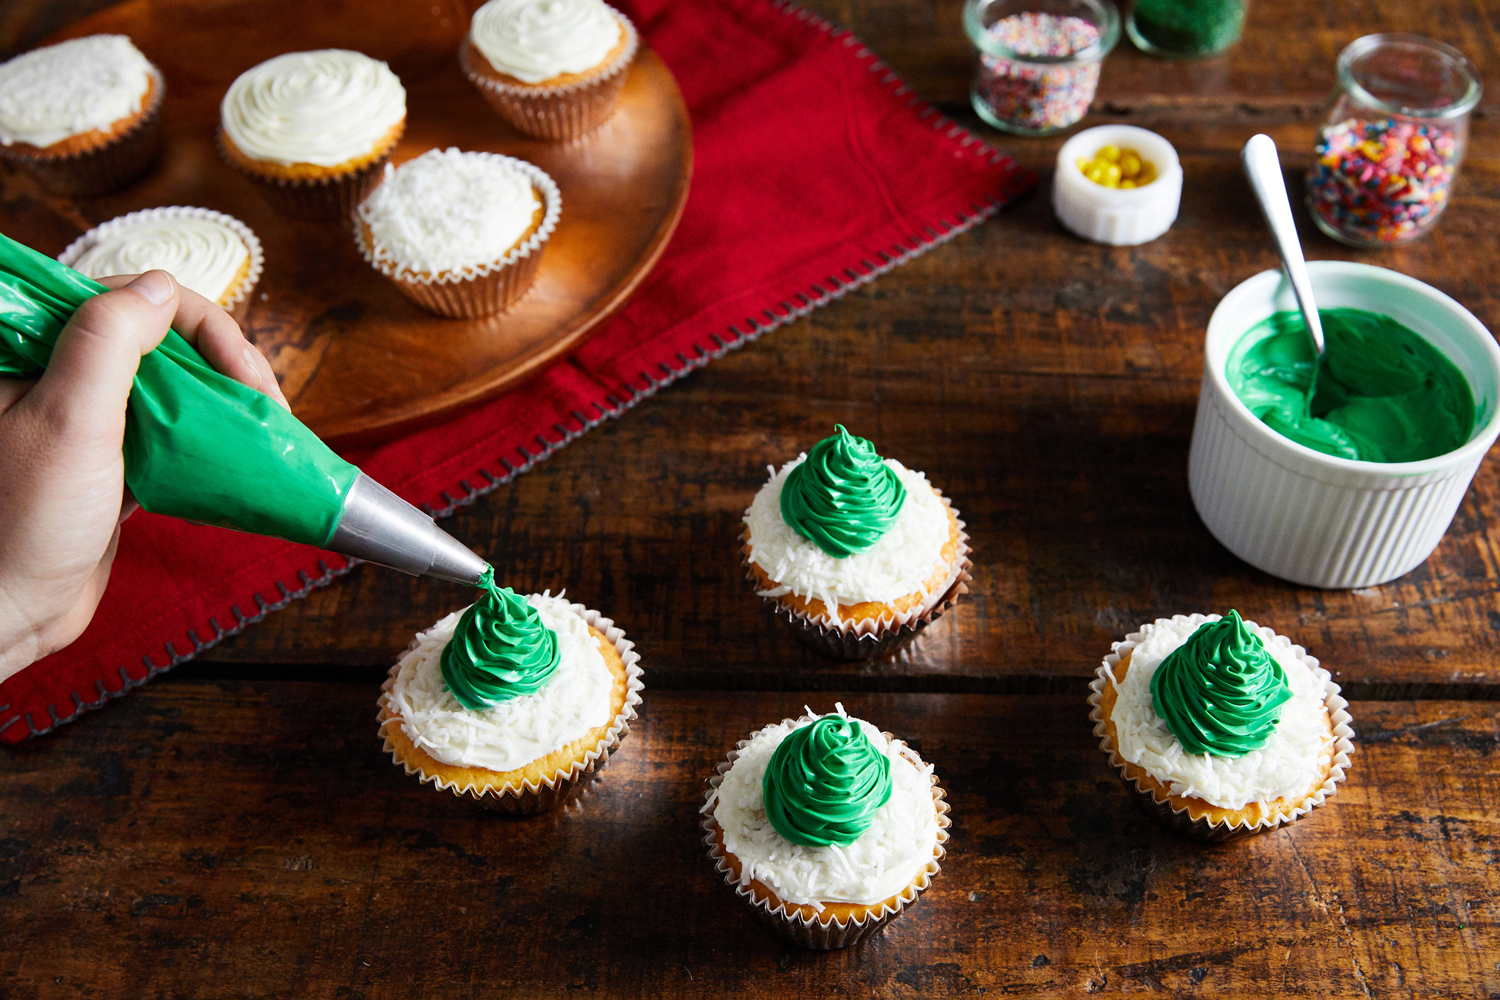 piping green frosted trees atop vanilla cupcakes